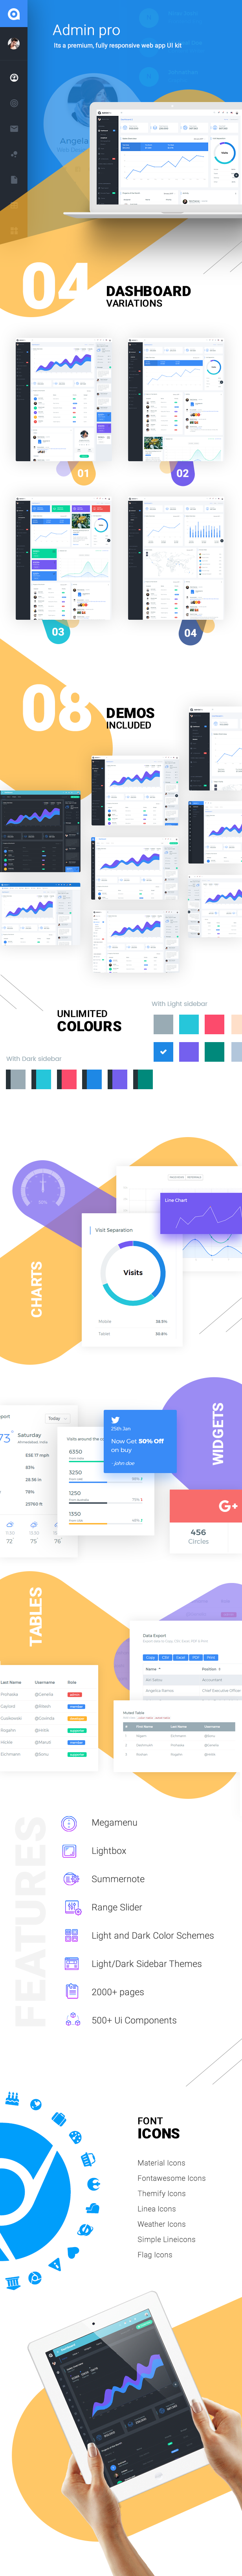 AdminPro Dashboard Features